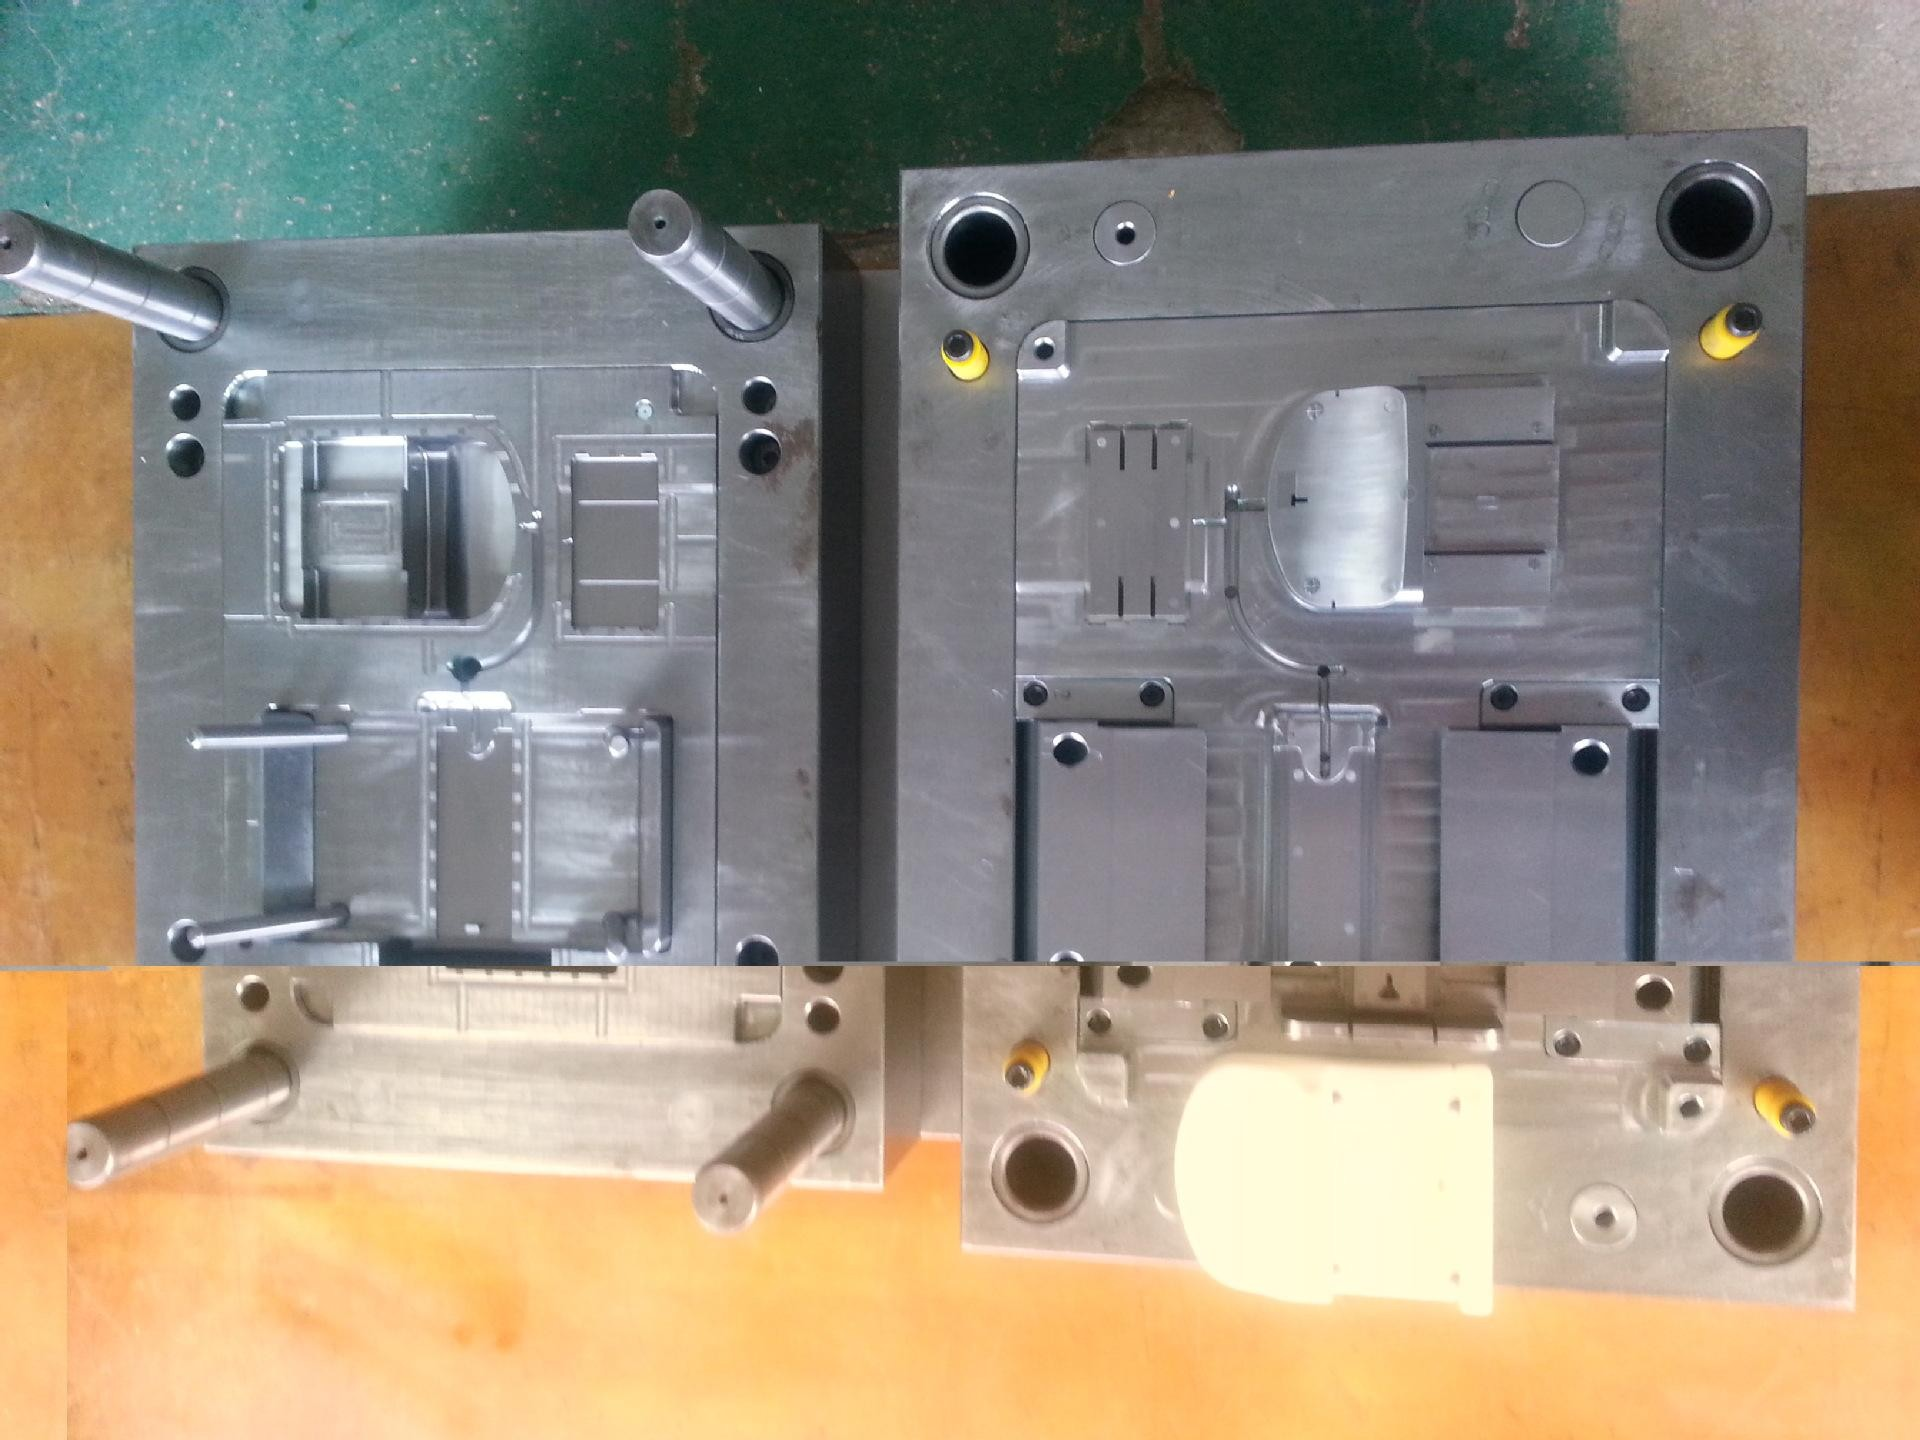 Auto Car Plastic Parts Mold Manufacturers, Auto Car Plastic Parts Mold Factory, Supply Auto Car Plastic Parts Mold